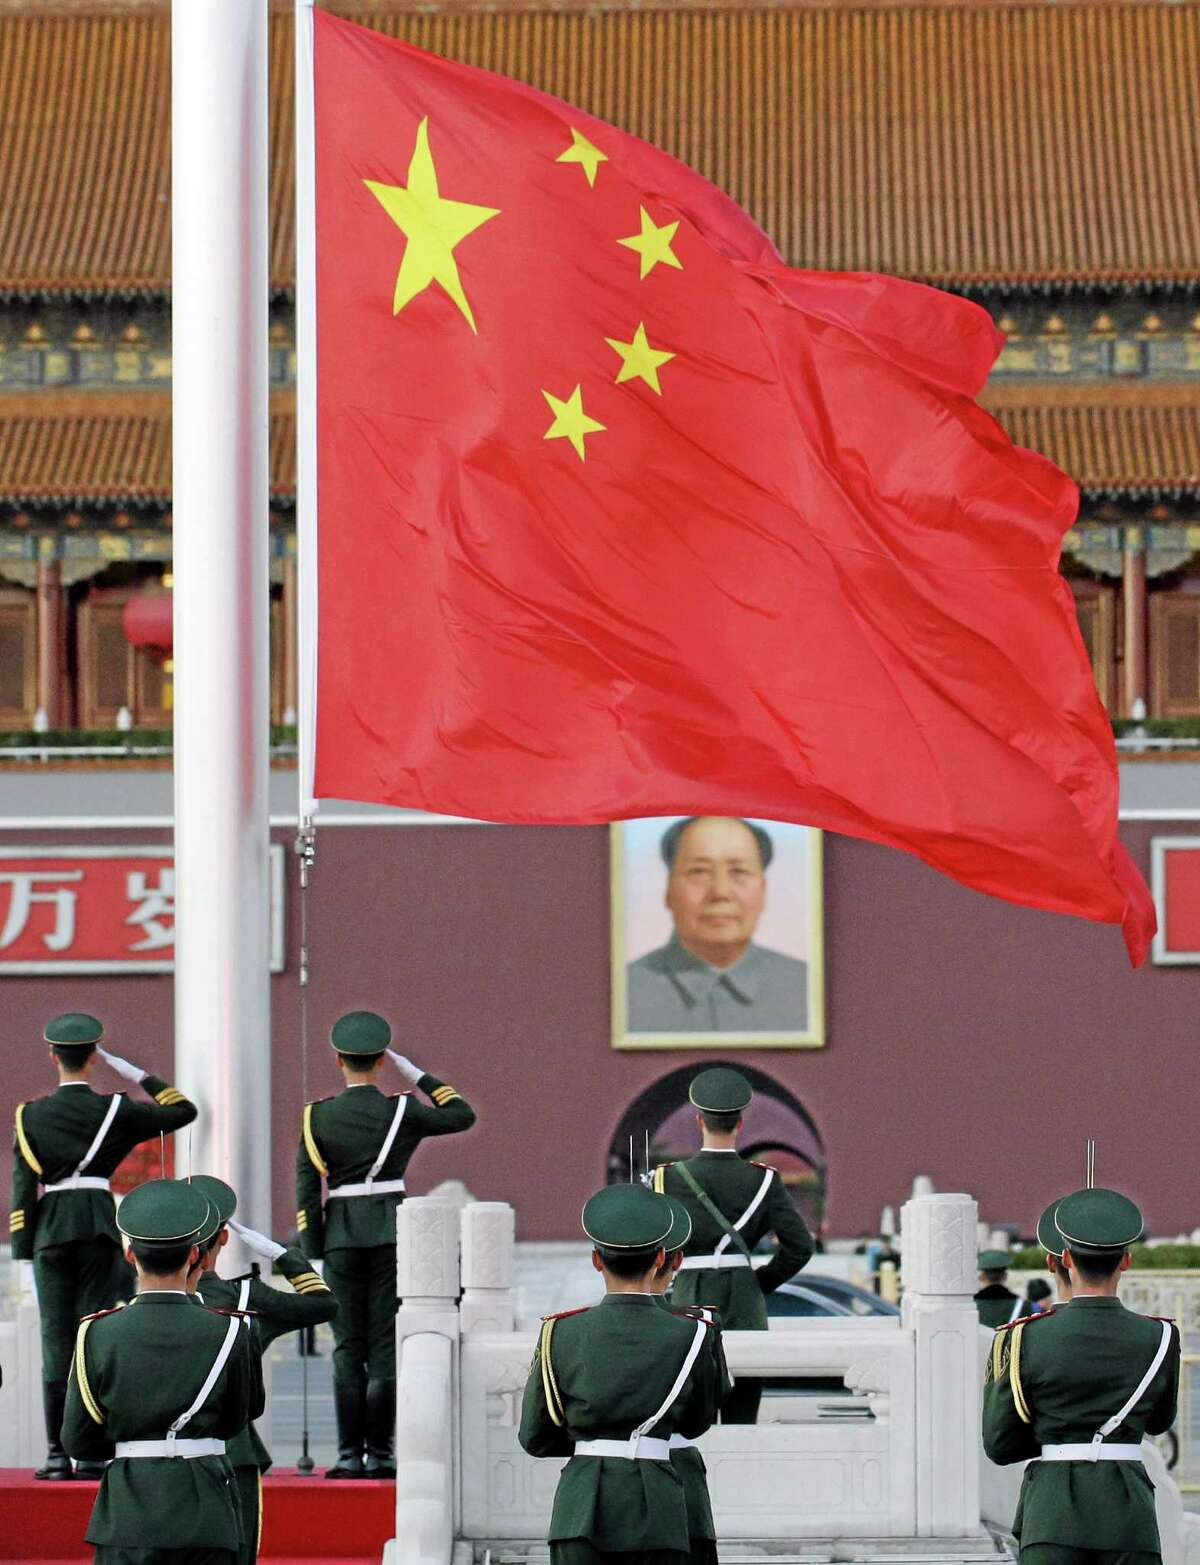 A Chinese national flag.